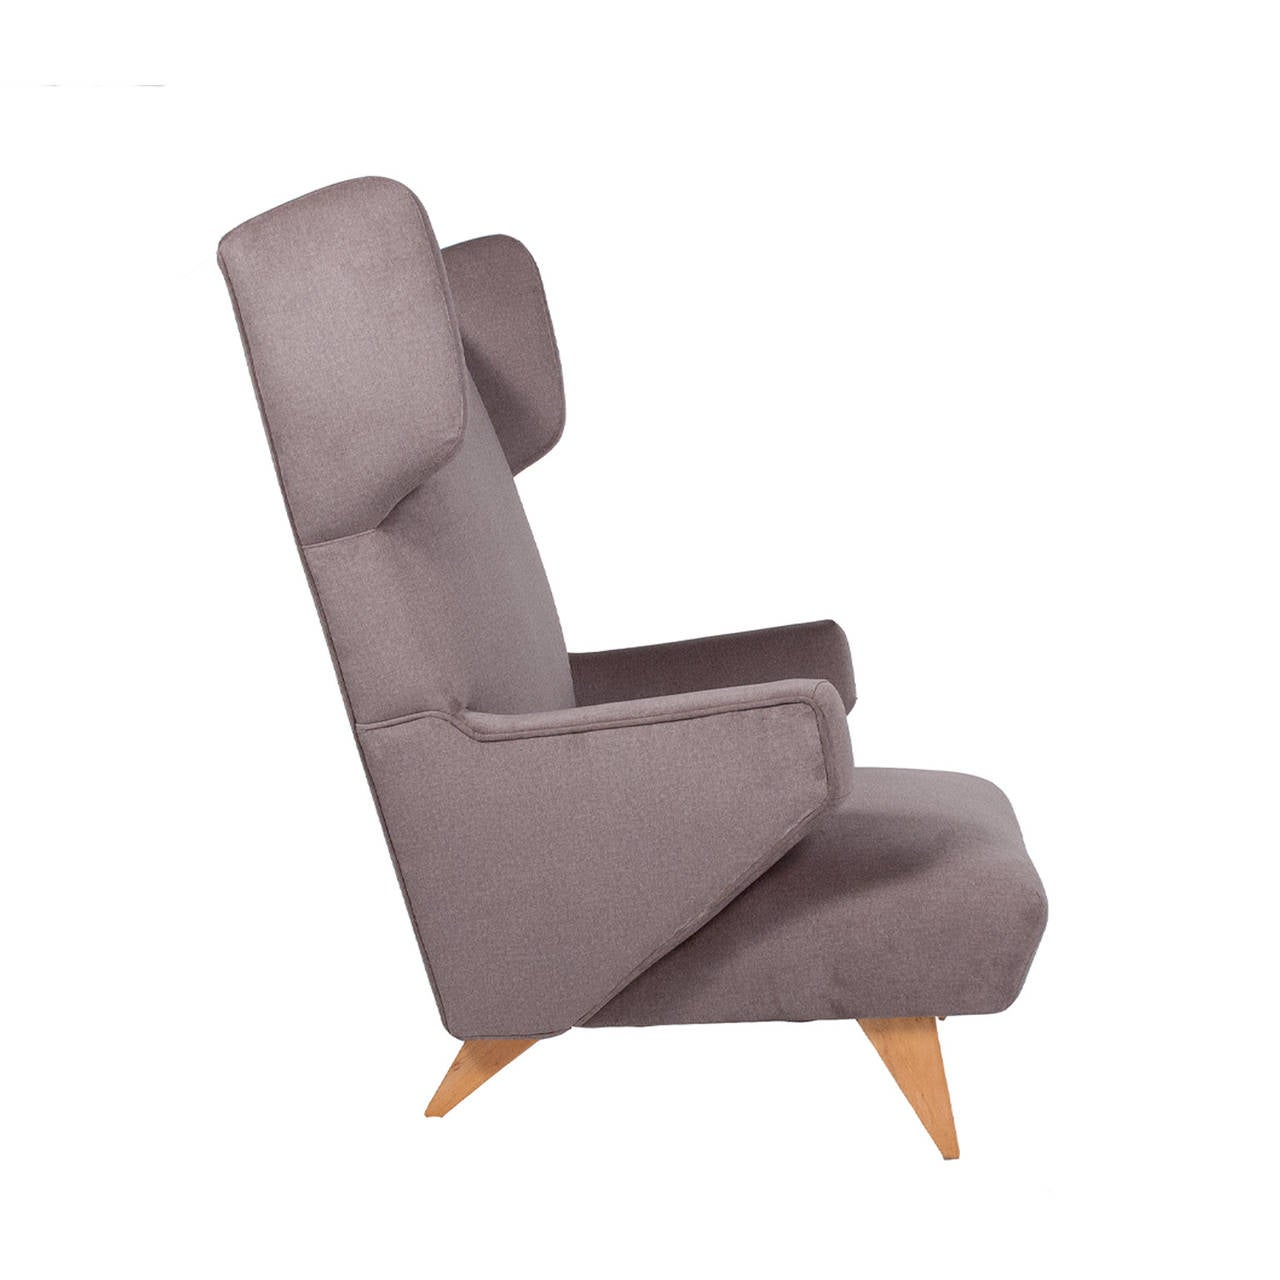 "Rare Jens Risom 1940s for Knoll ""Coupe"" Lounge Chair at 1stdibs"